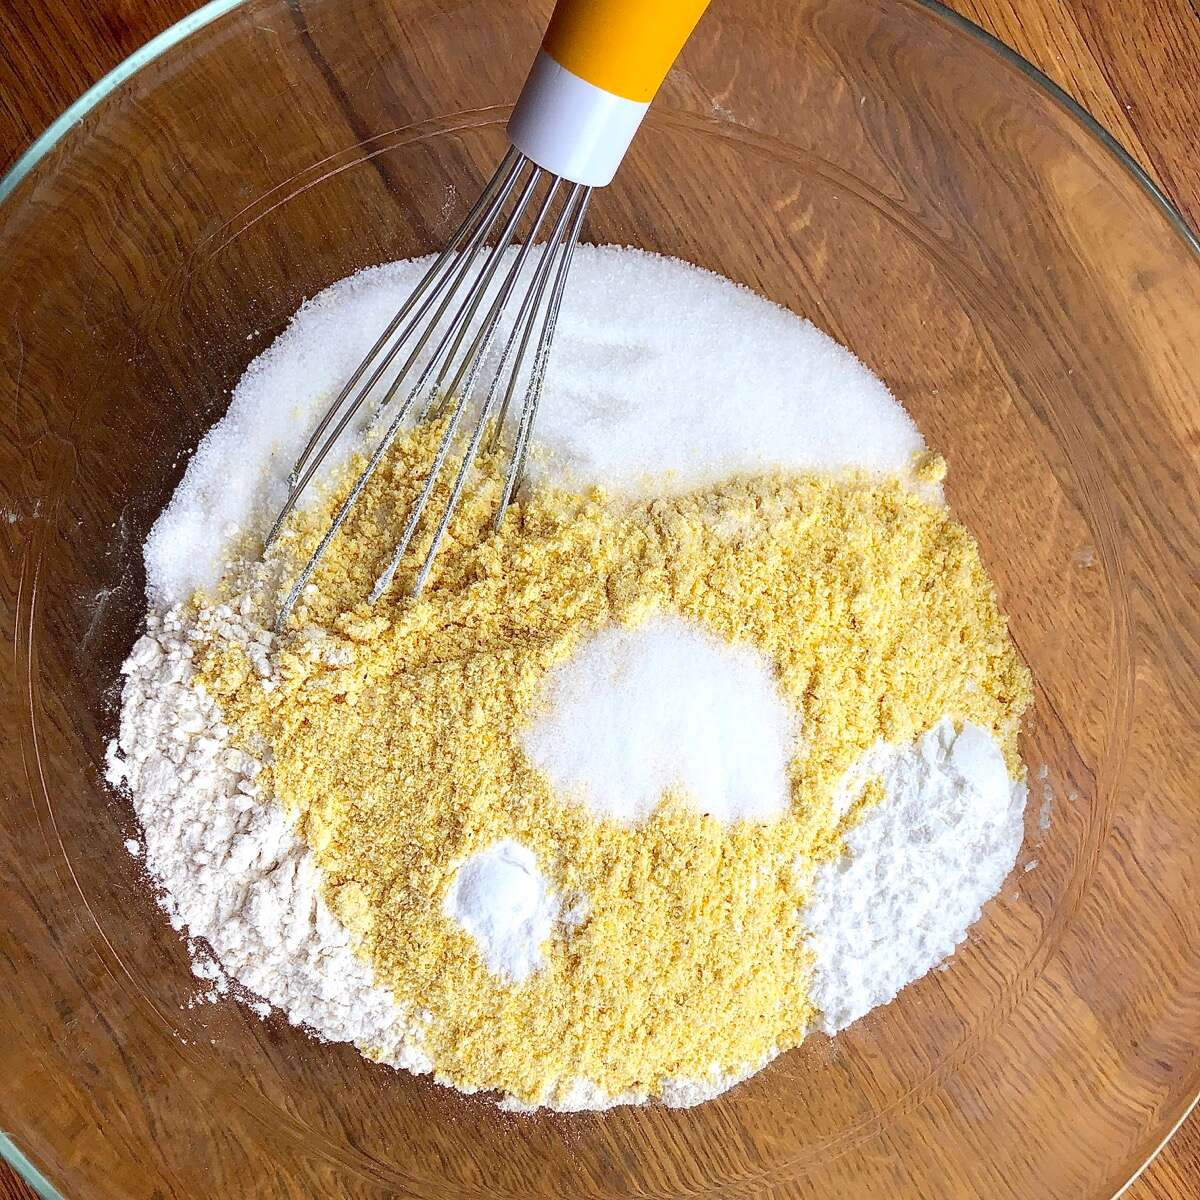 Dry ingredients for cornbread in a bowl ready to be whisked